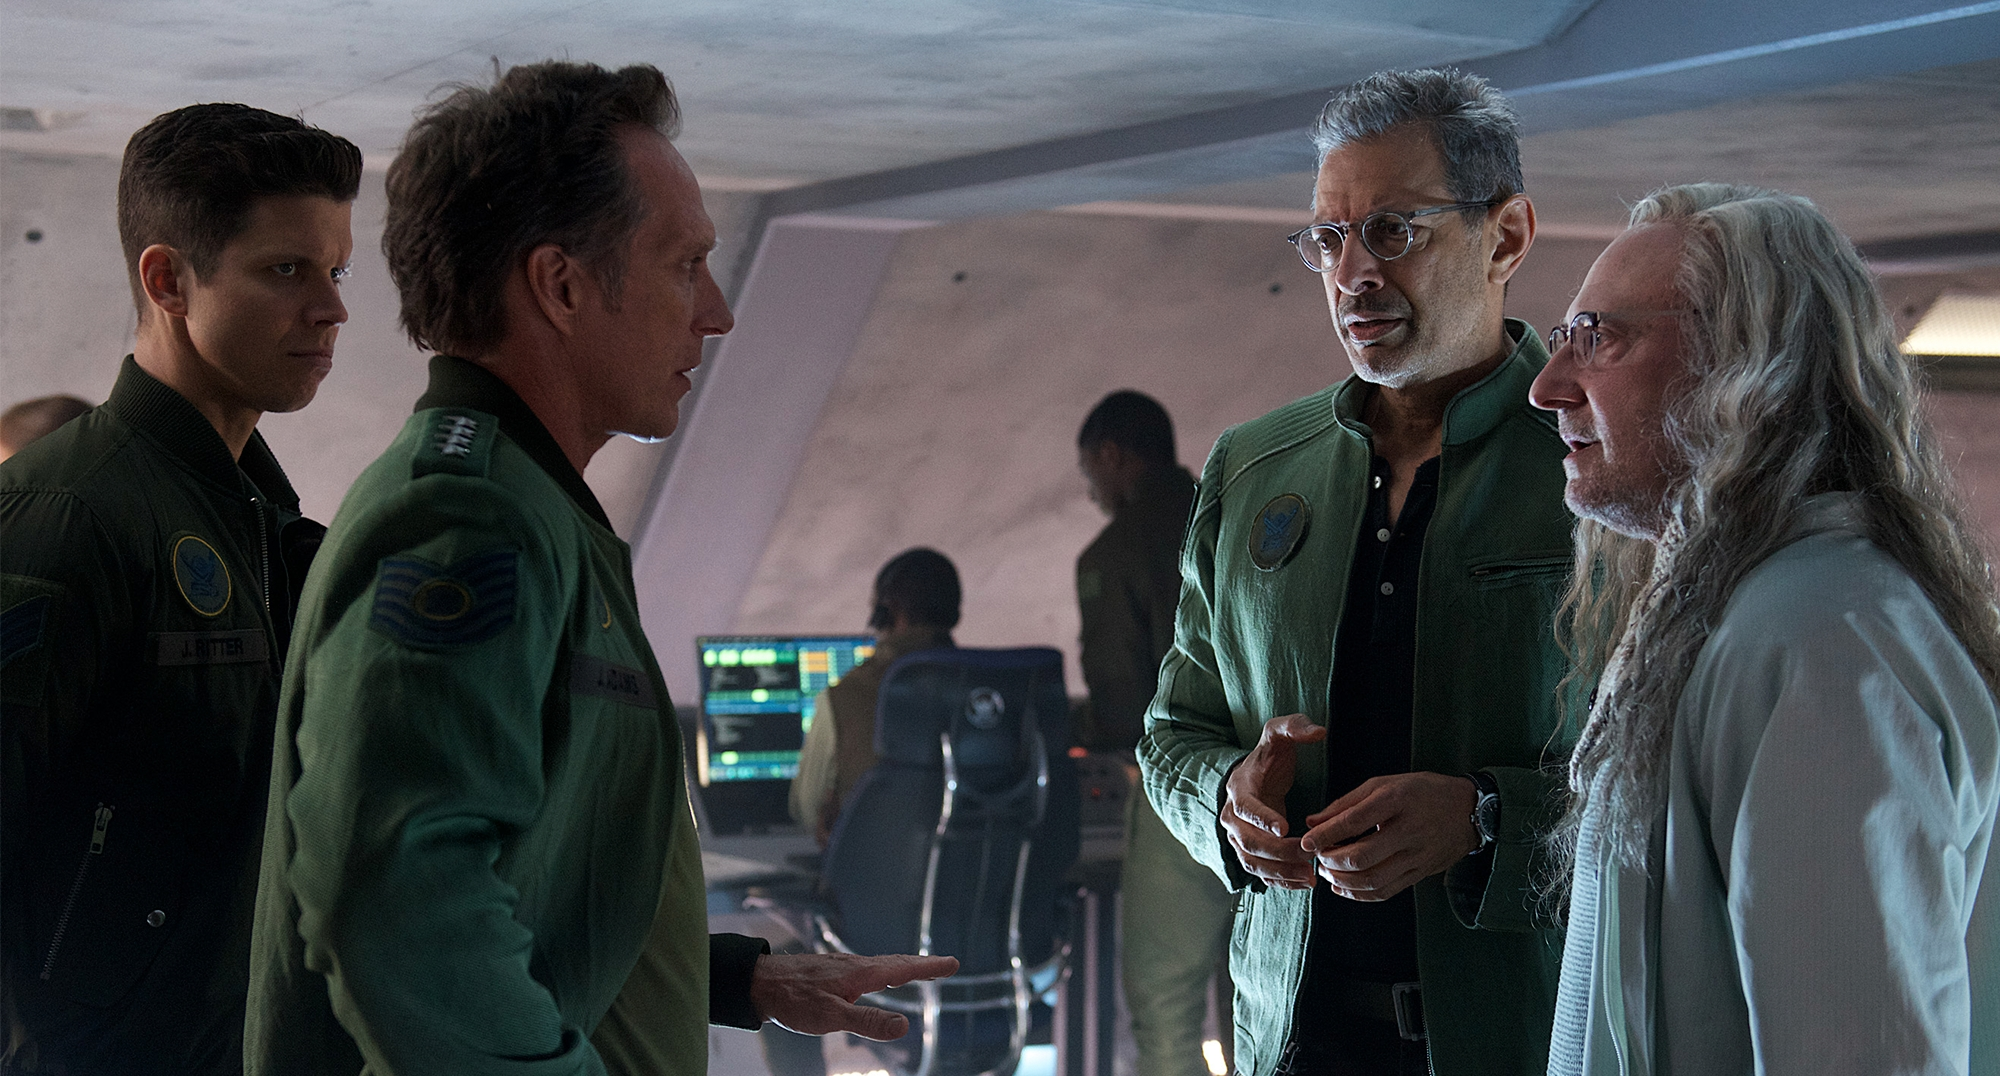 Independence Day: Resurgence only increases in destruction and repetition